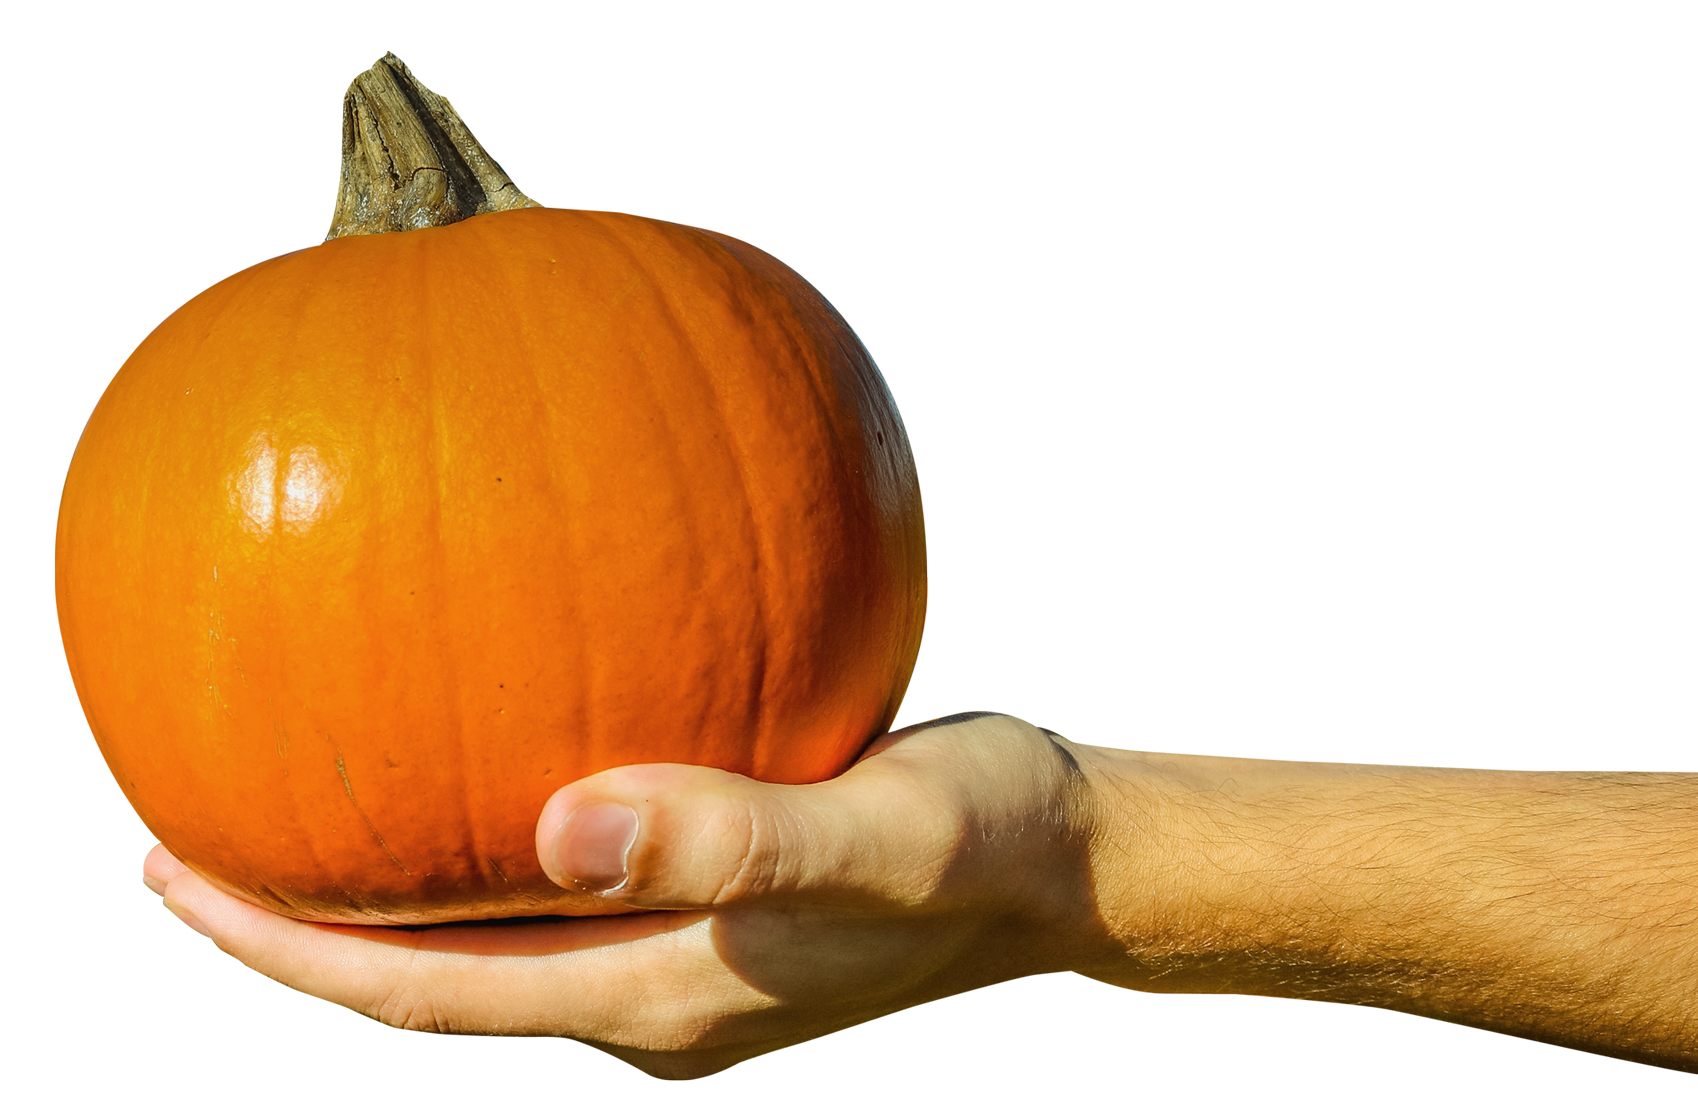 Pumpkin holding sign clipart clipart library Hand Holding Orange Pumpkin PNG Image - PurePNG | Free transparent ... clipart library